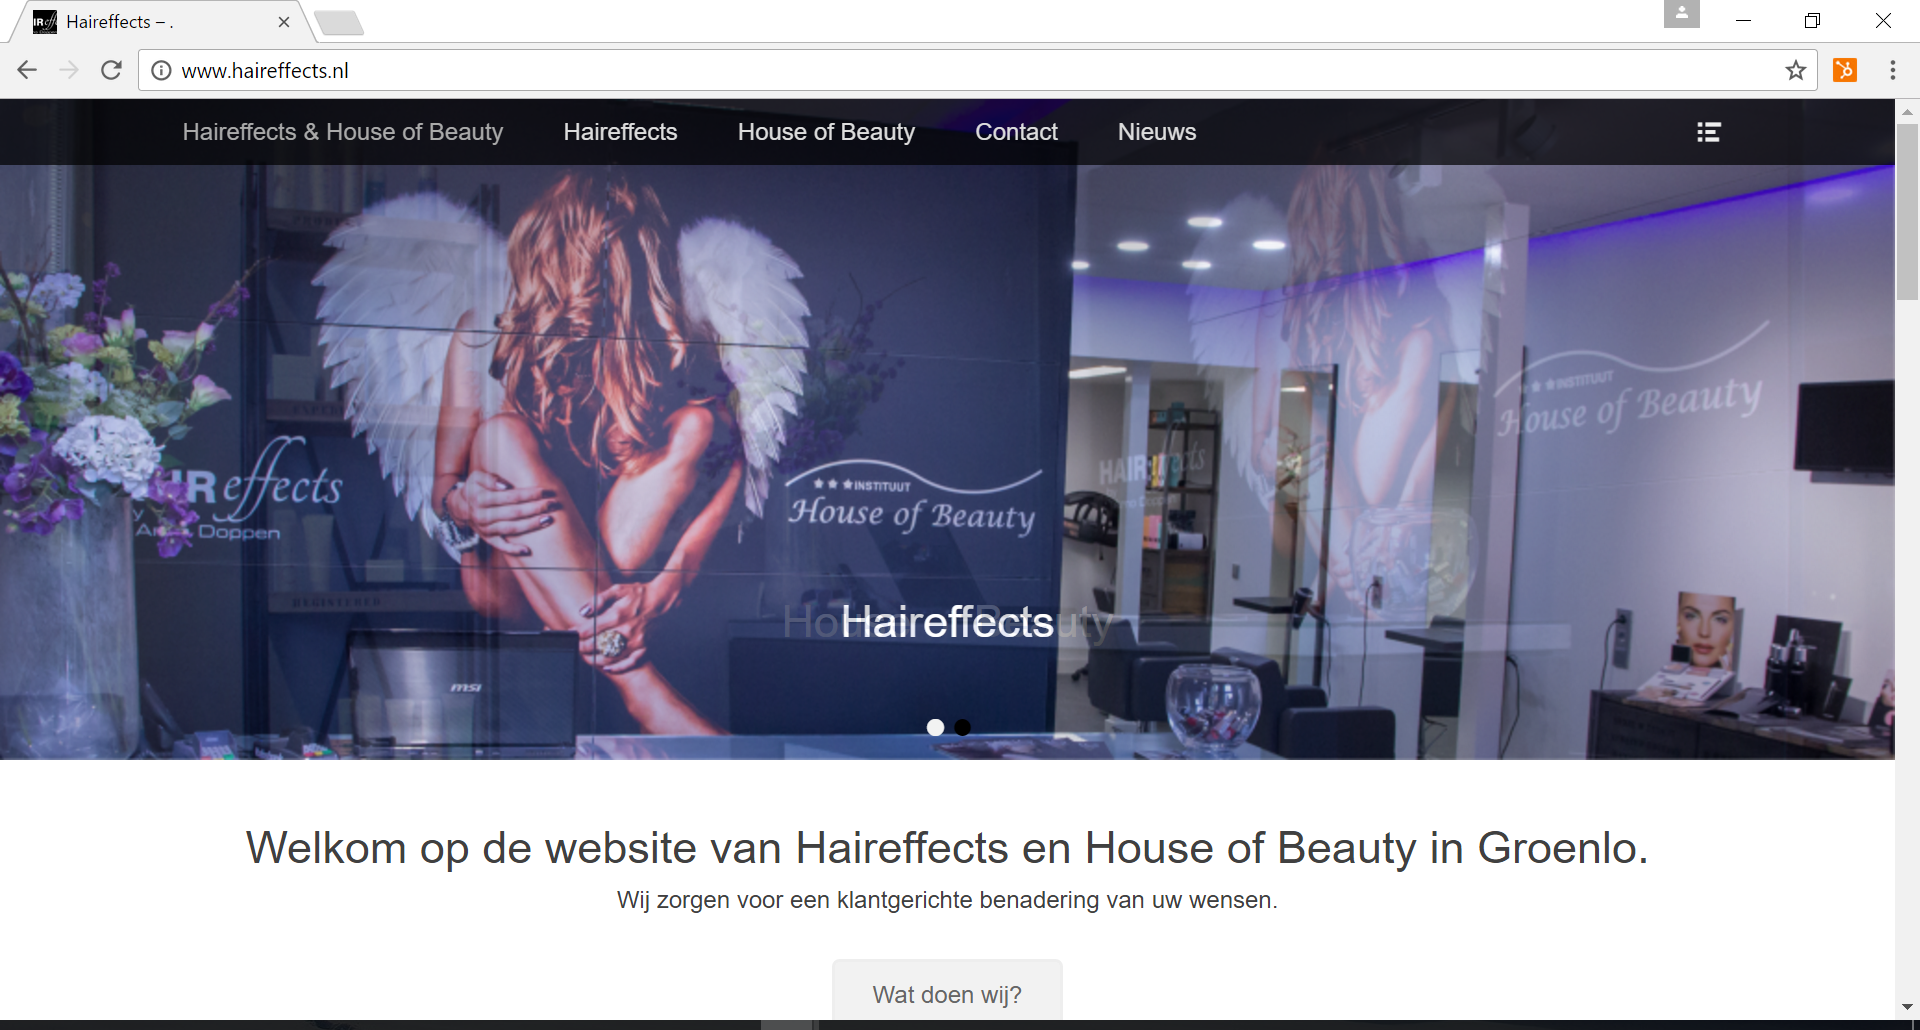 Haireffects en House of Beauty Groenlo